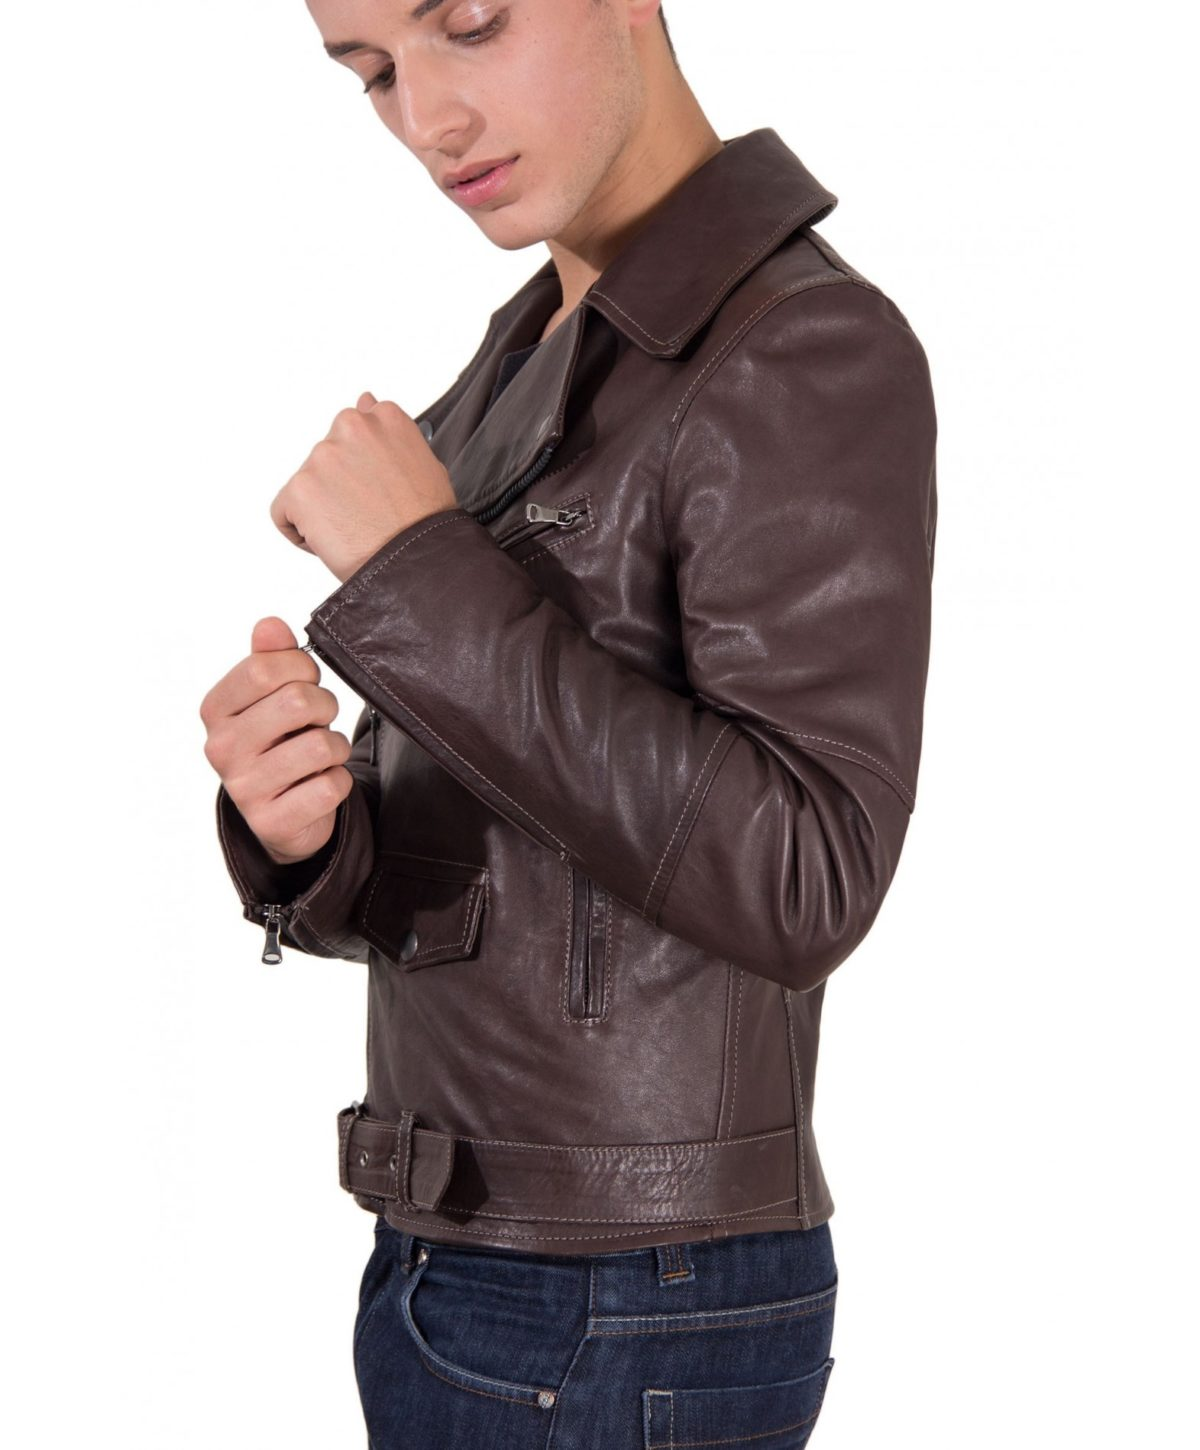 men-s-leather-jacket-perfecto-genuine-soft-leather-biker-cross-zip-brown-color-chiodo-perfecto (3)